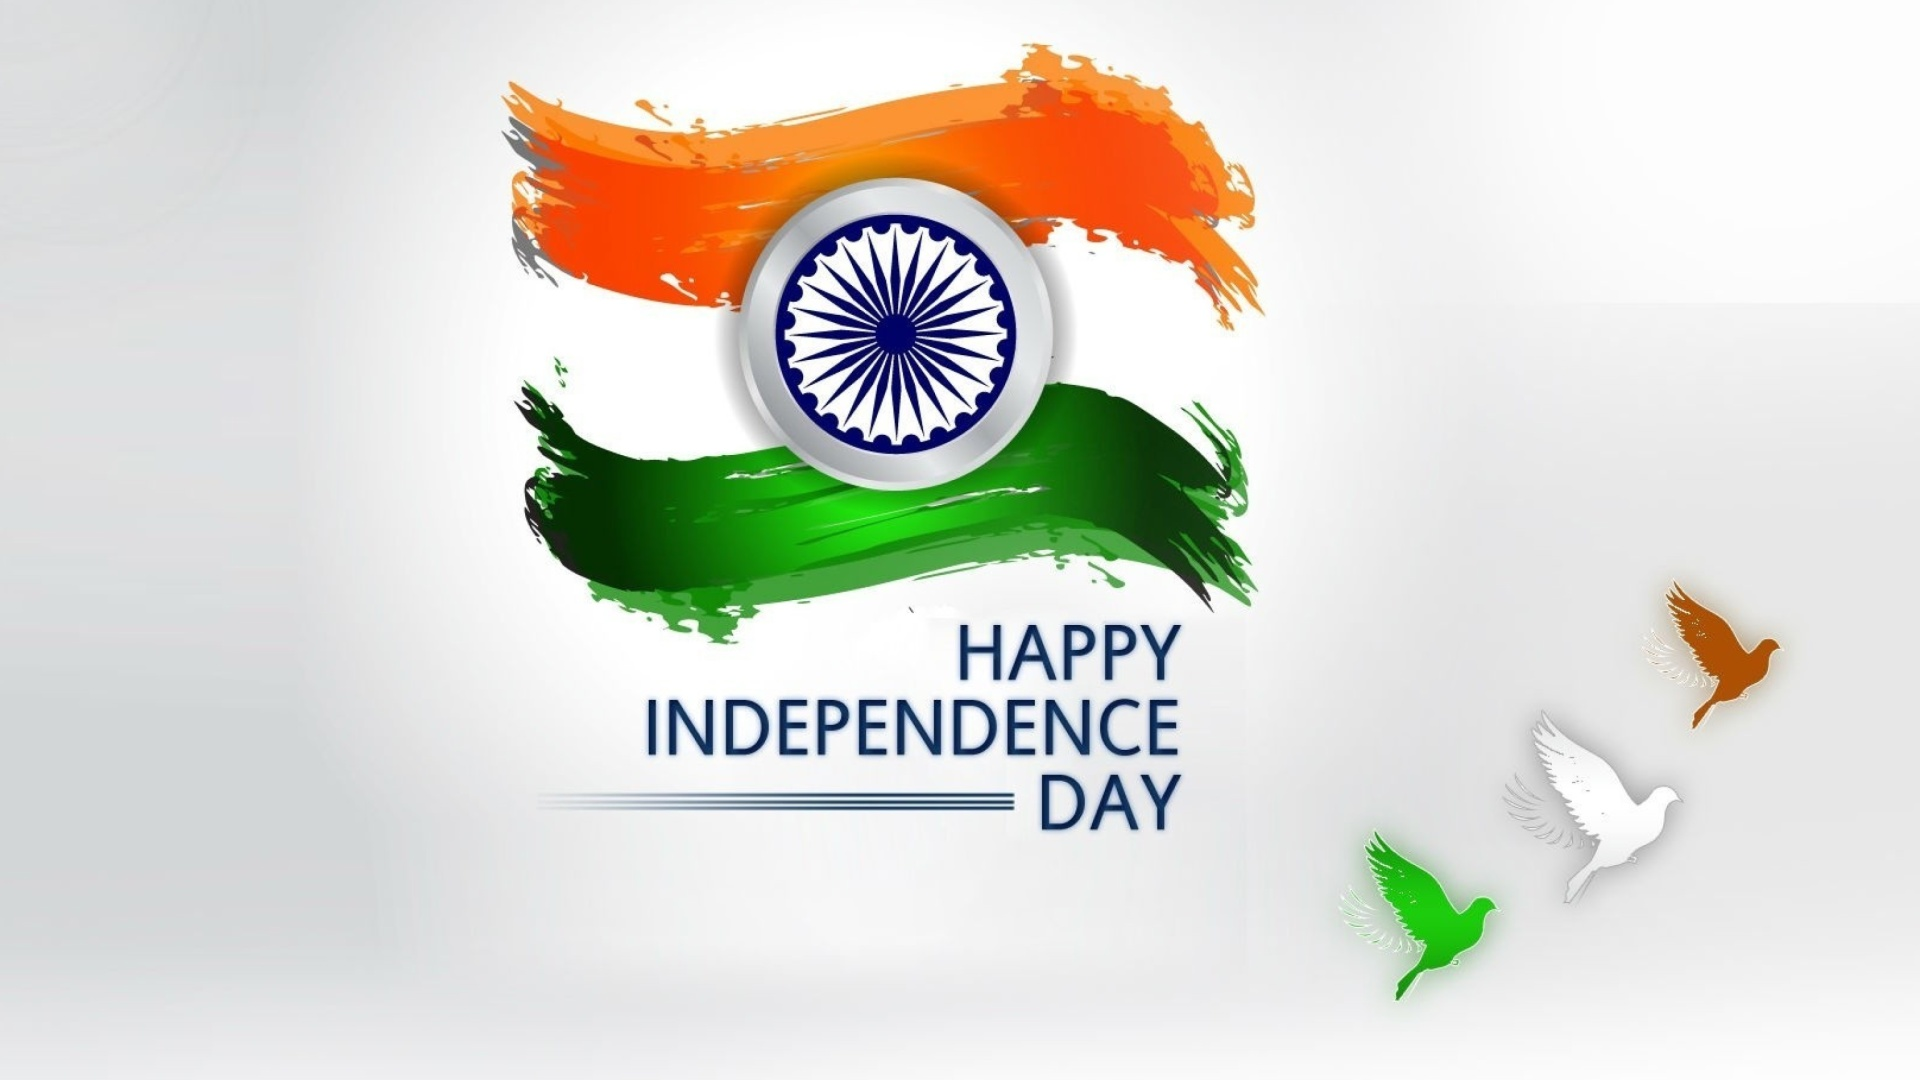 Independence Day India wallpaper 1920x1080